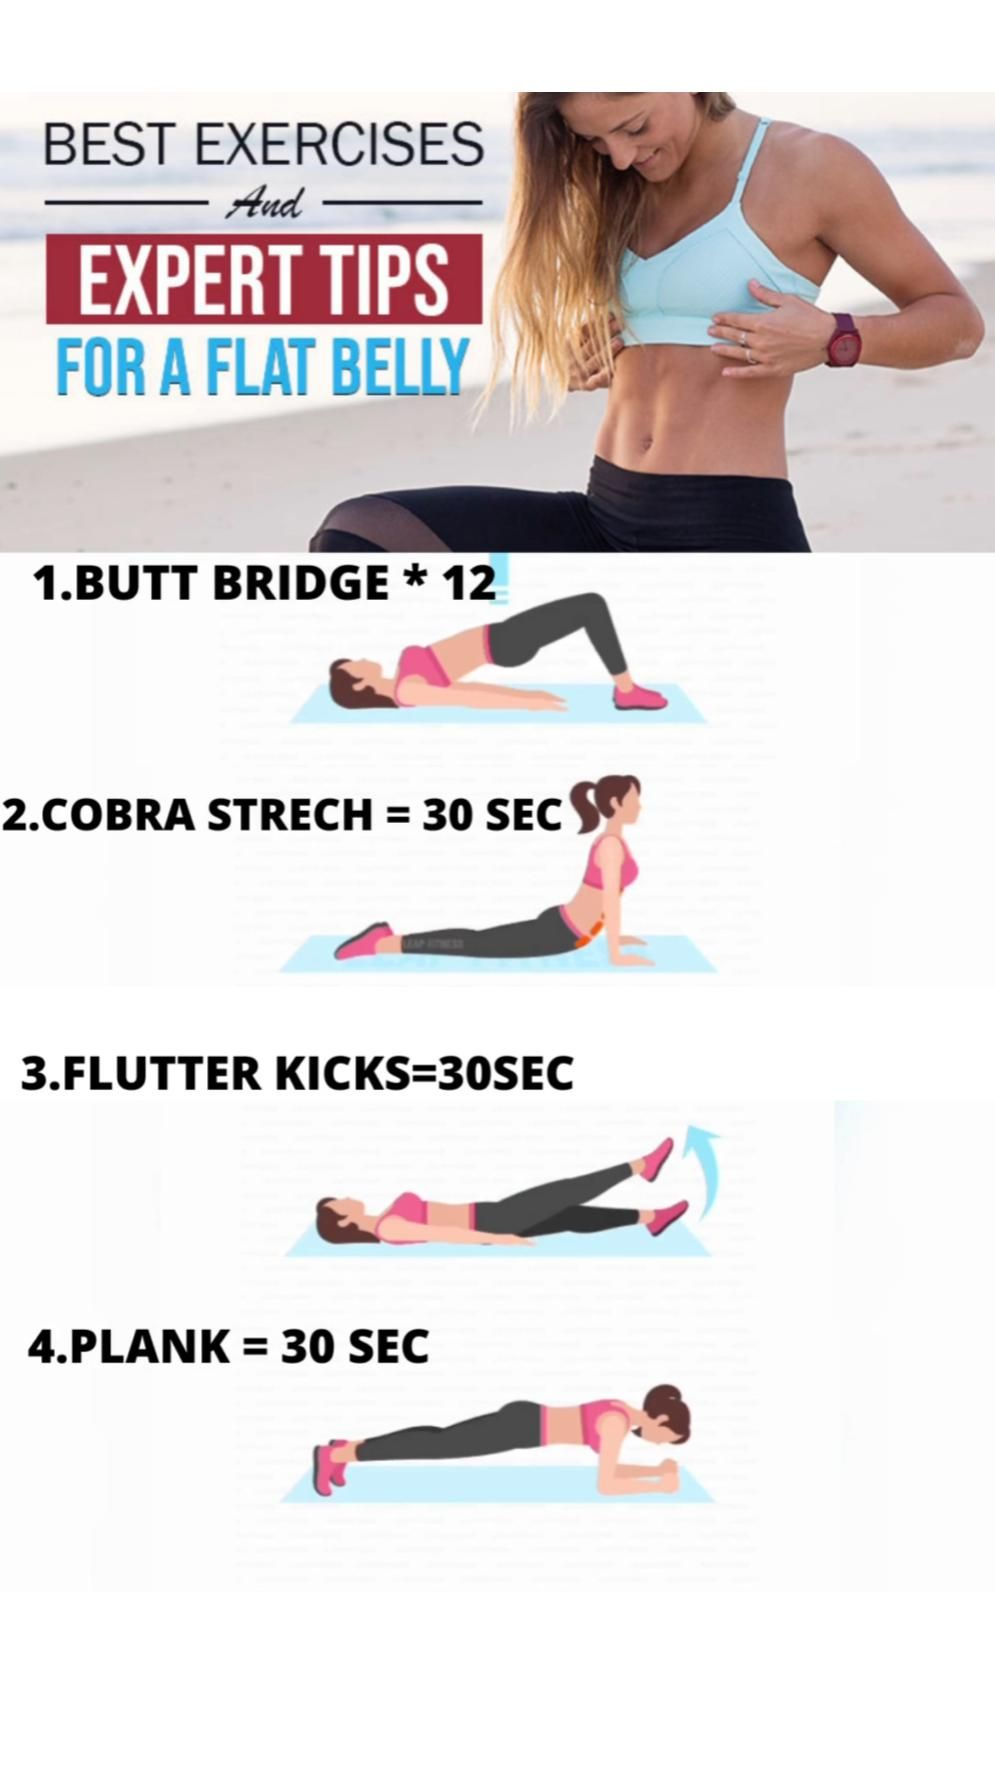 BEST EXERCISES FOR FLAT BELLY